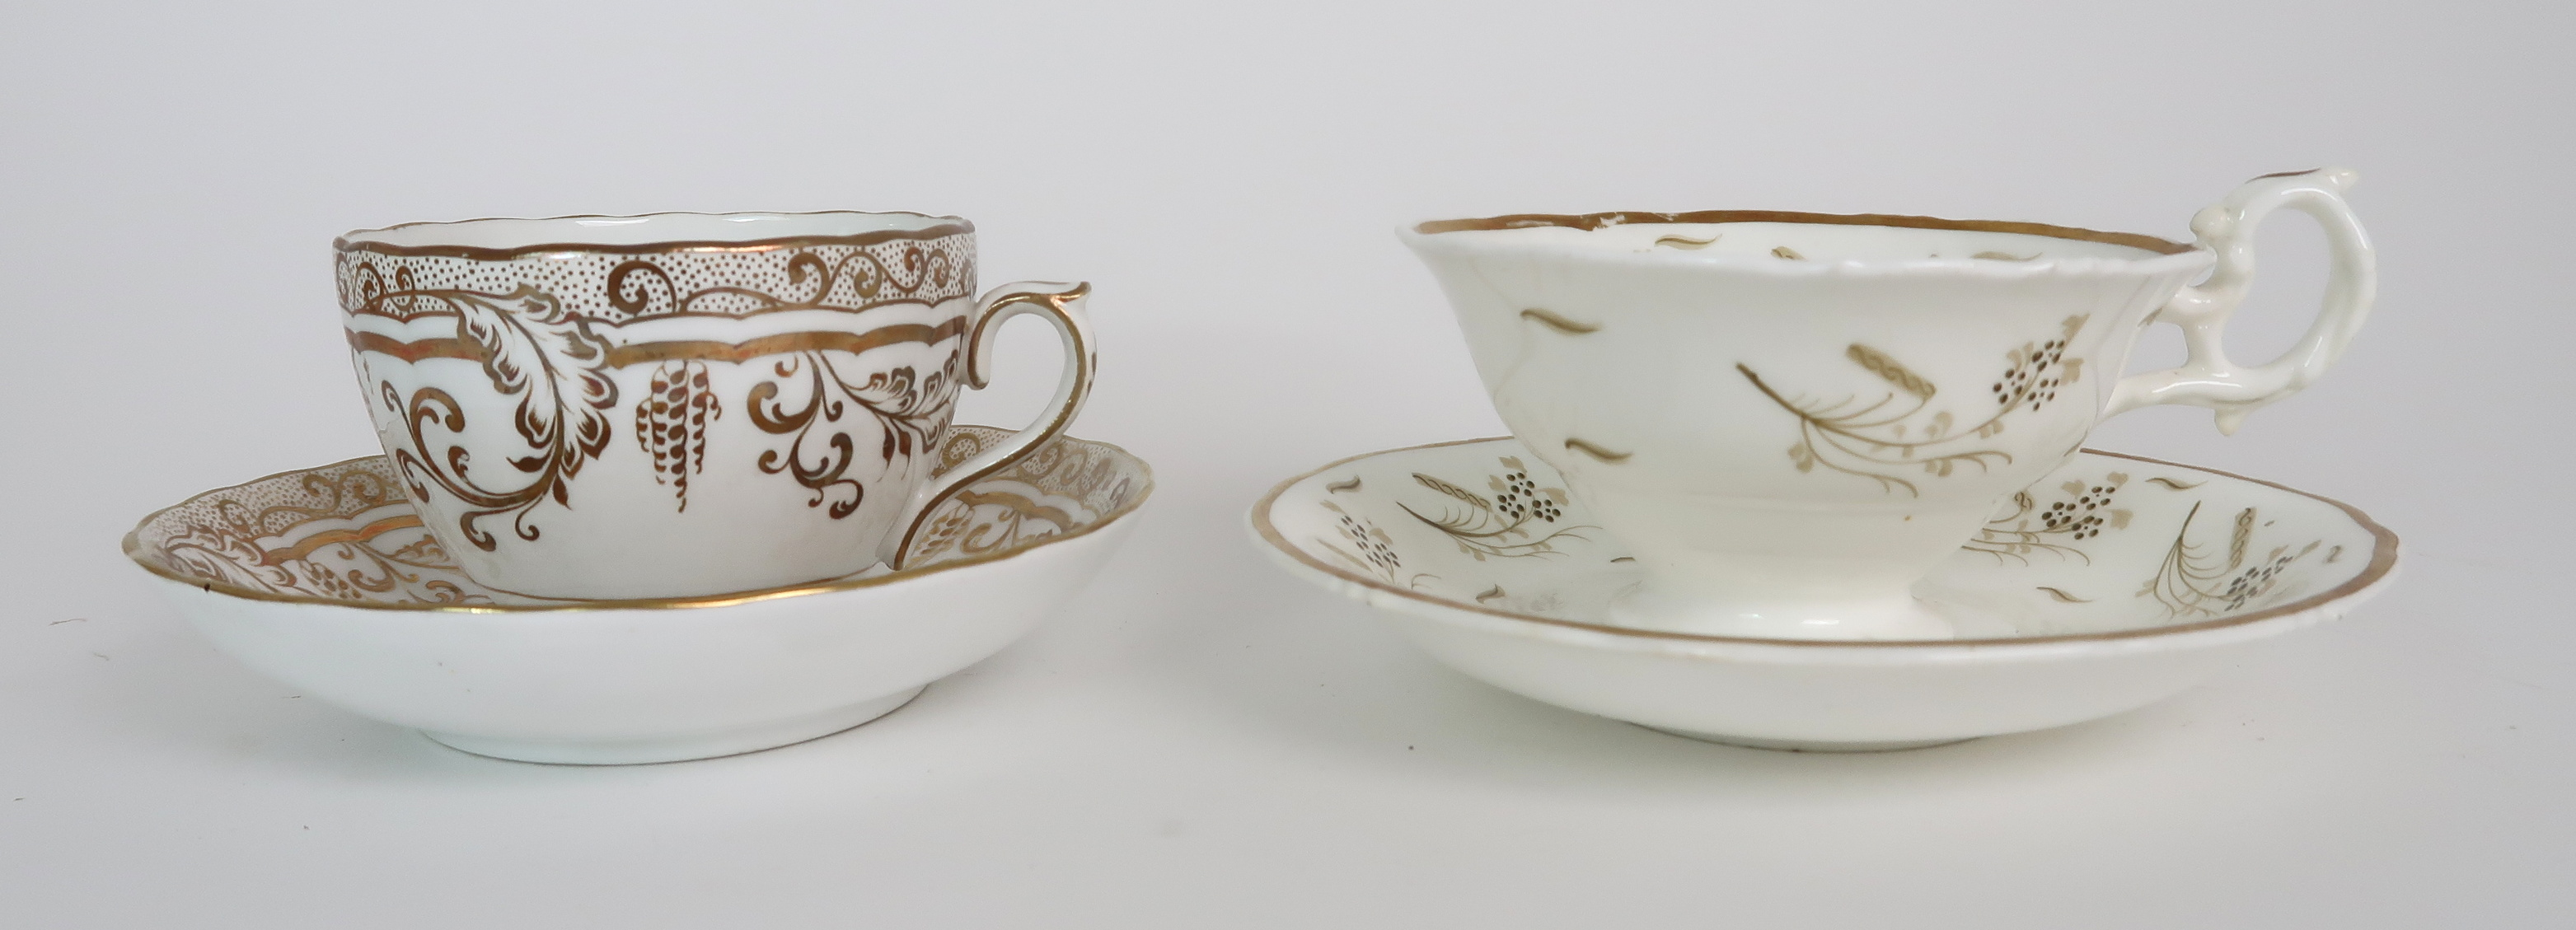 A COLLECTION OF 19TH CENTURY ENGLISH TEA AND COFFEE WARES the white ground with either grey and gilt - Image 14 of 22